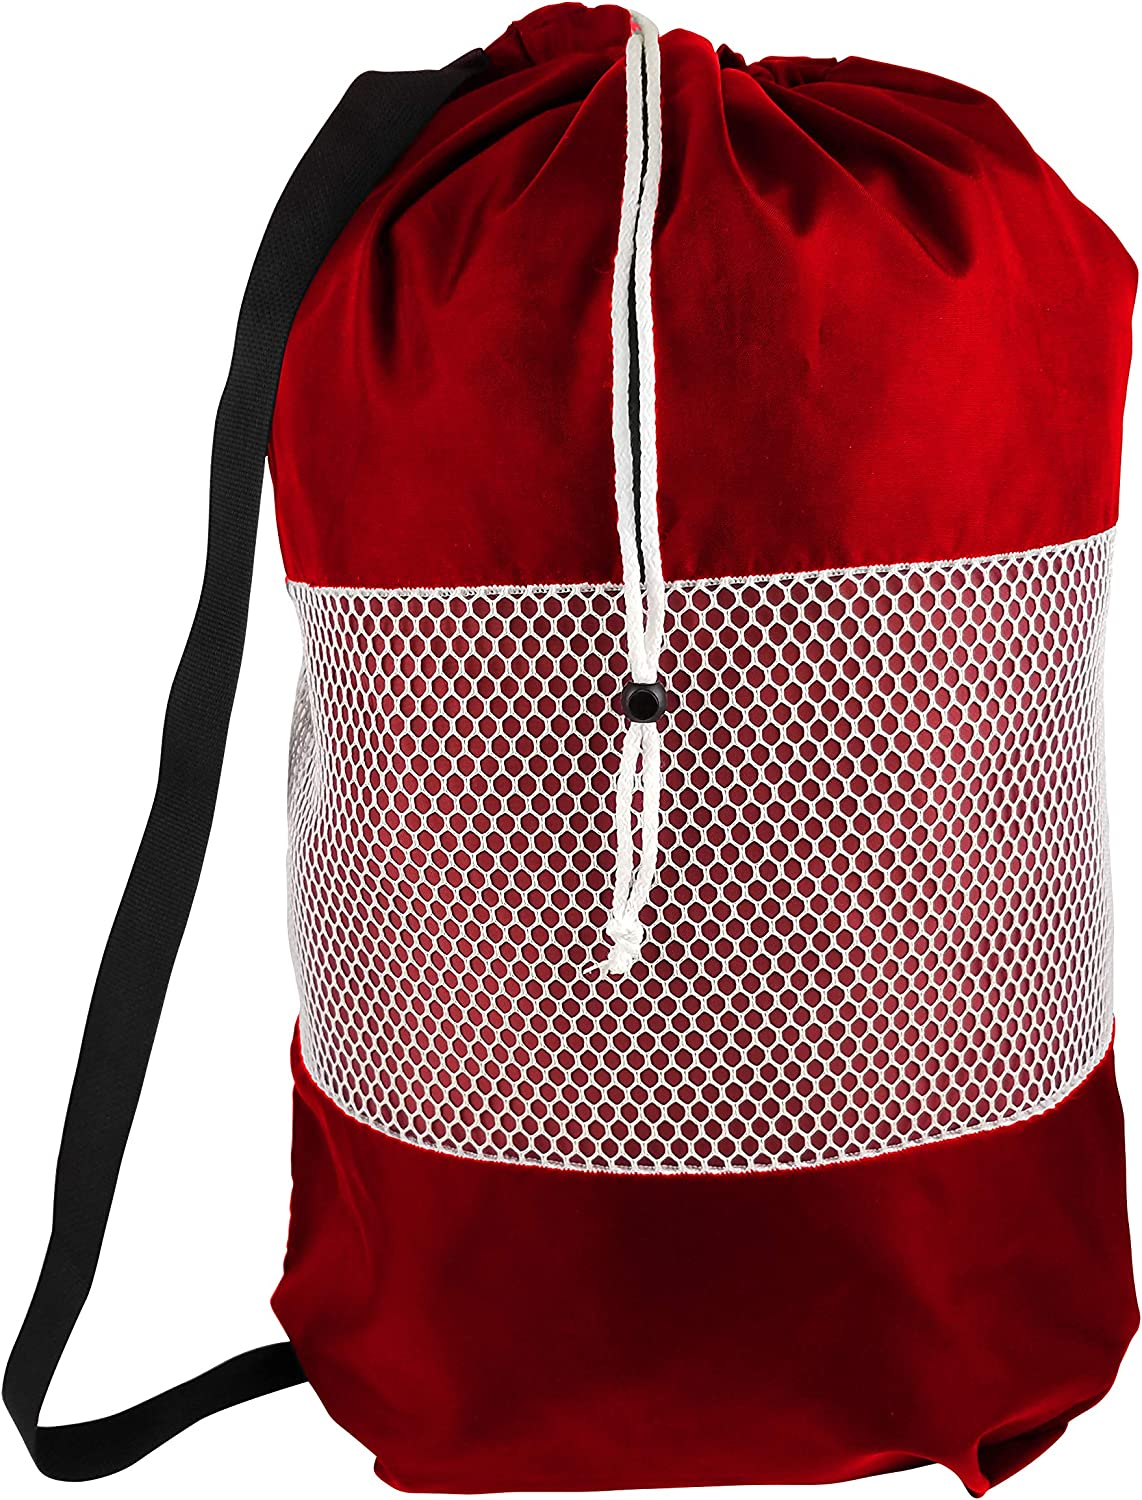 B&C Nylon Mesh Perfect College Laundry Bag with Reliable Shoulder Strap-28 X34-100% Nylon, for Heavy Duty Use, College Laundry Bags, Laundromat and Household Storage, Machine Washable (Red)